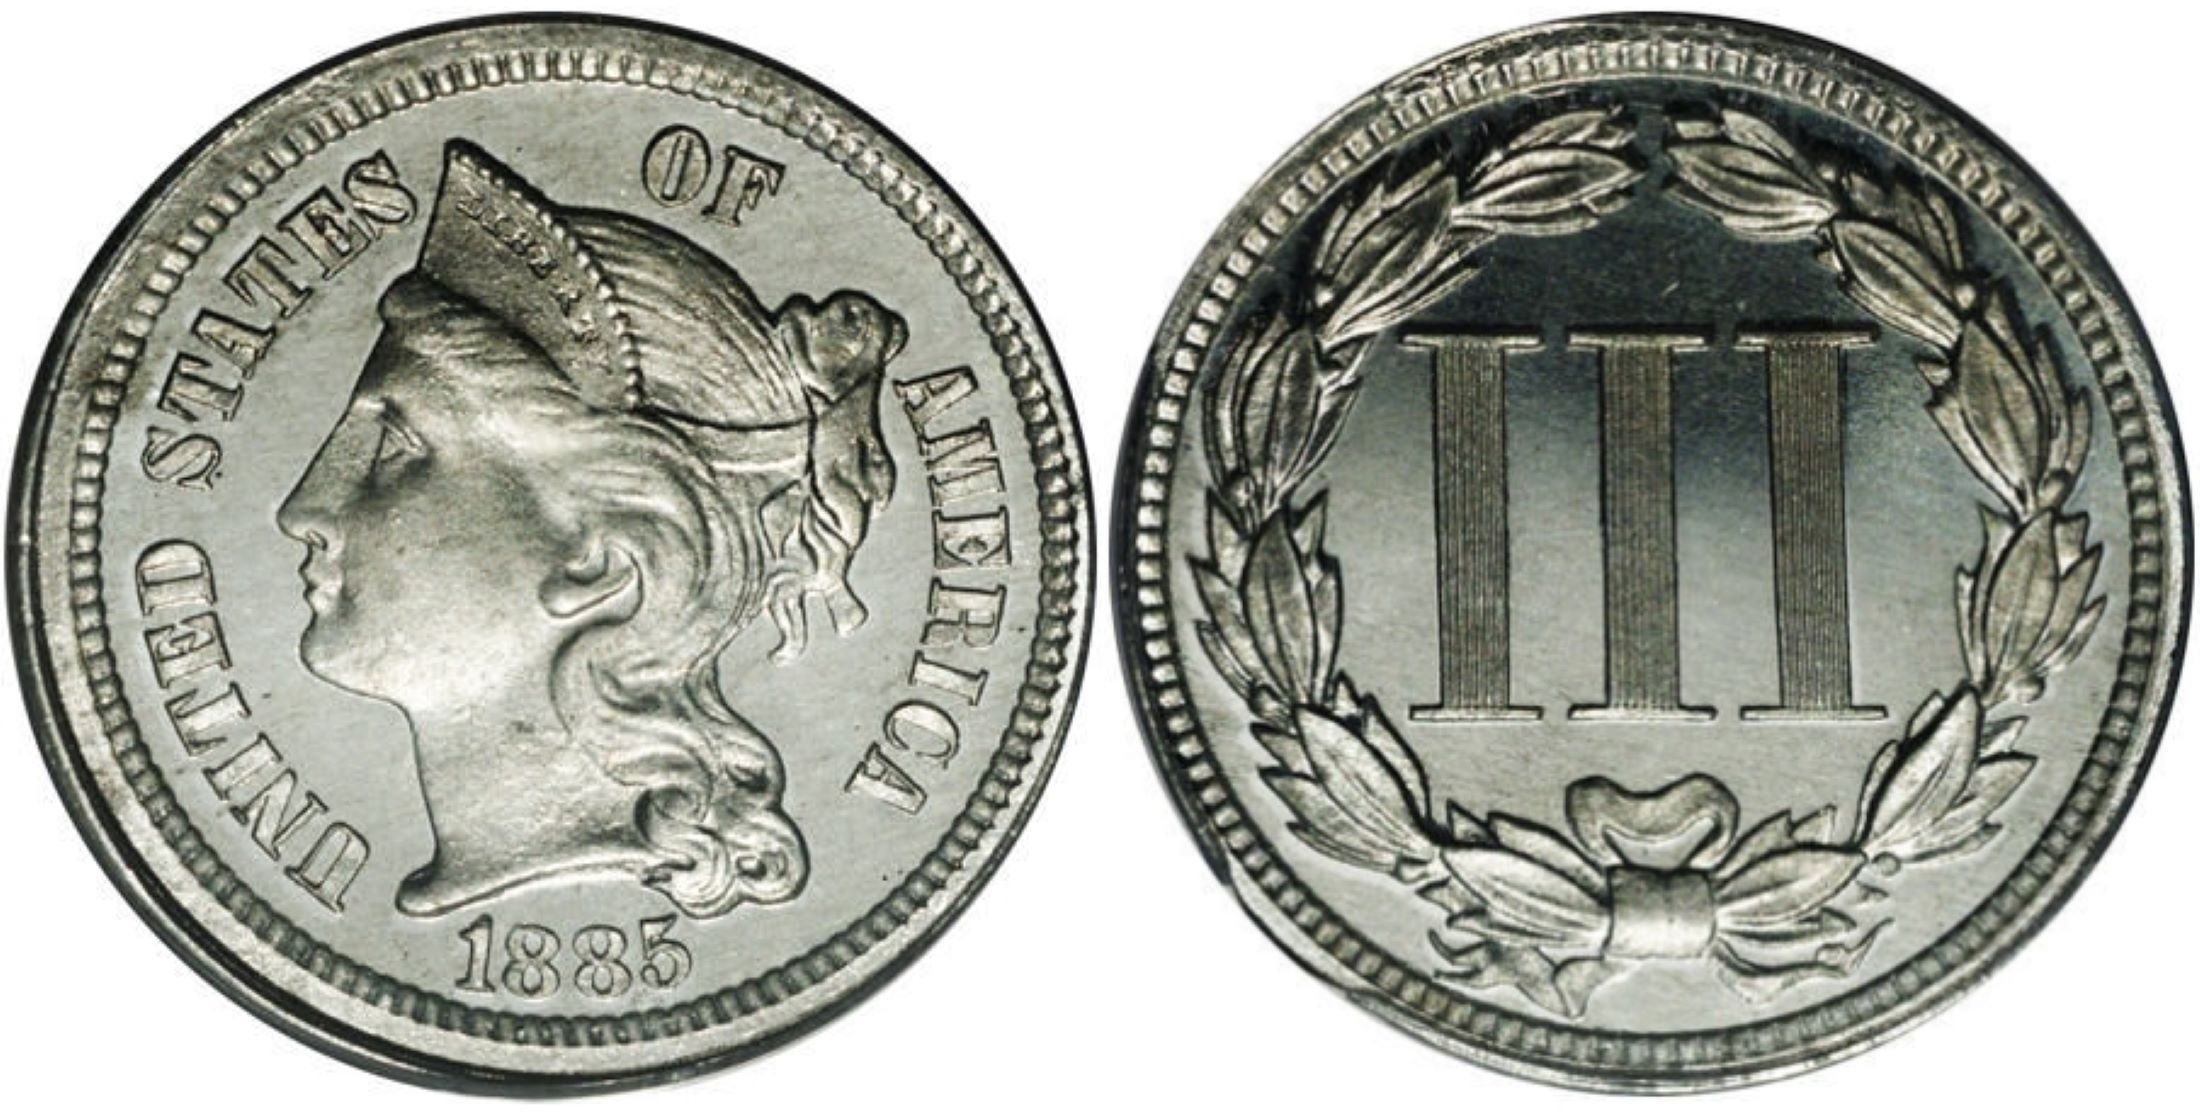 "PCGS PR66<BR>Image courtesy of <a href=""http://www.ha.com"" target=""_blank"">Heritage Numismatic Auctions</a>"